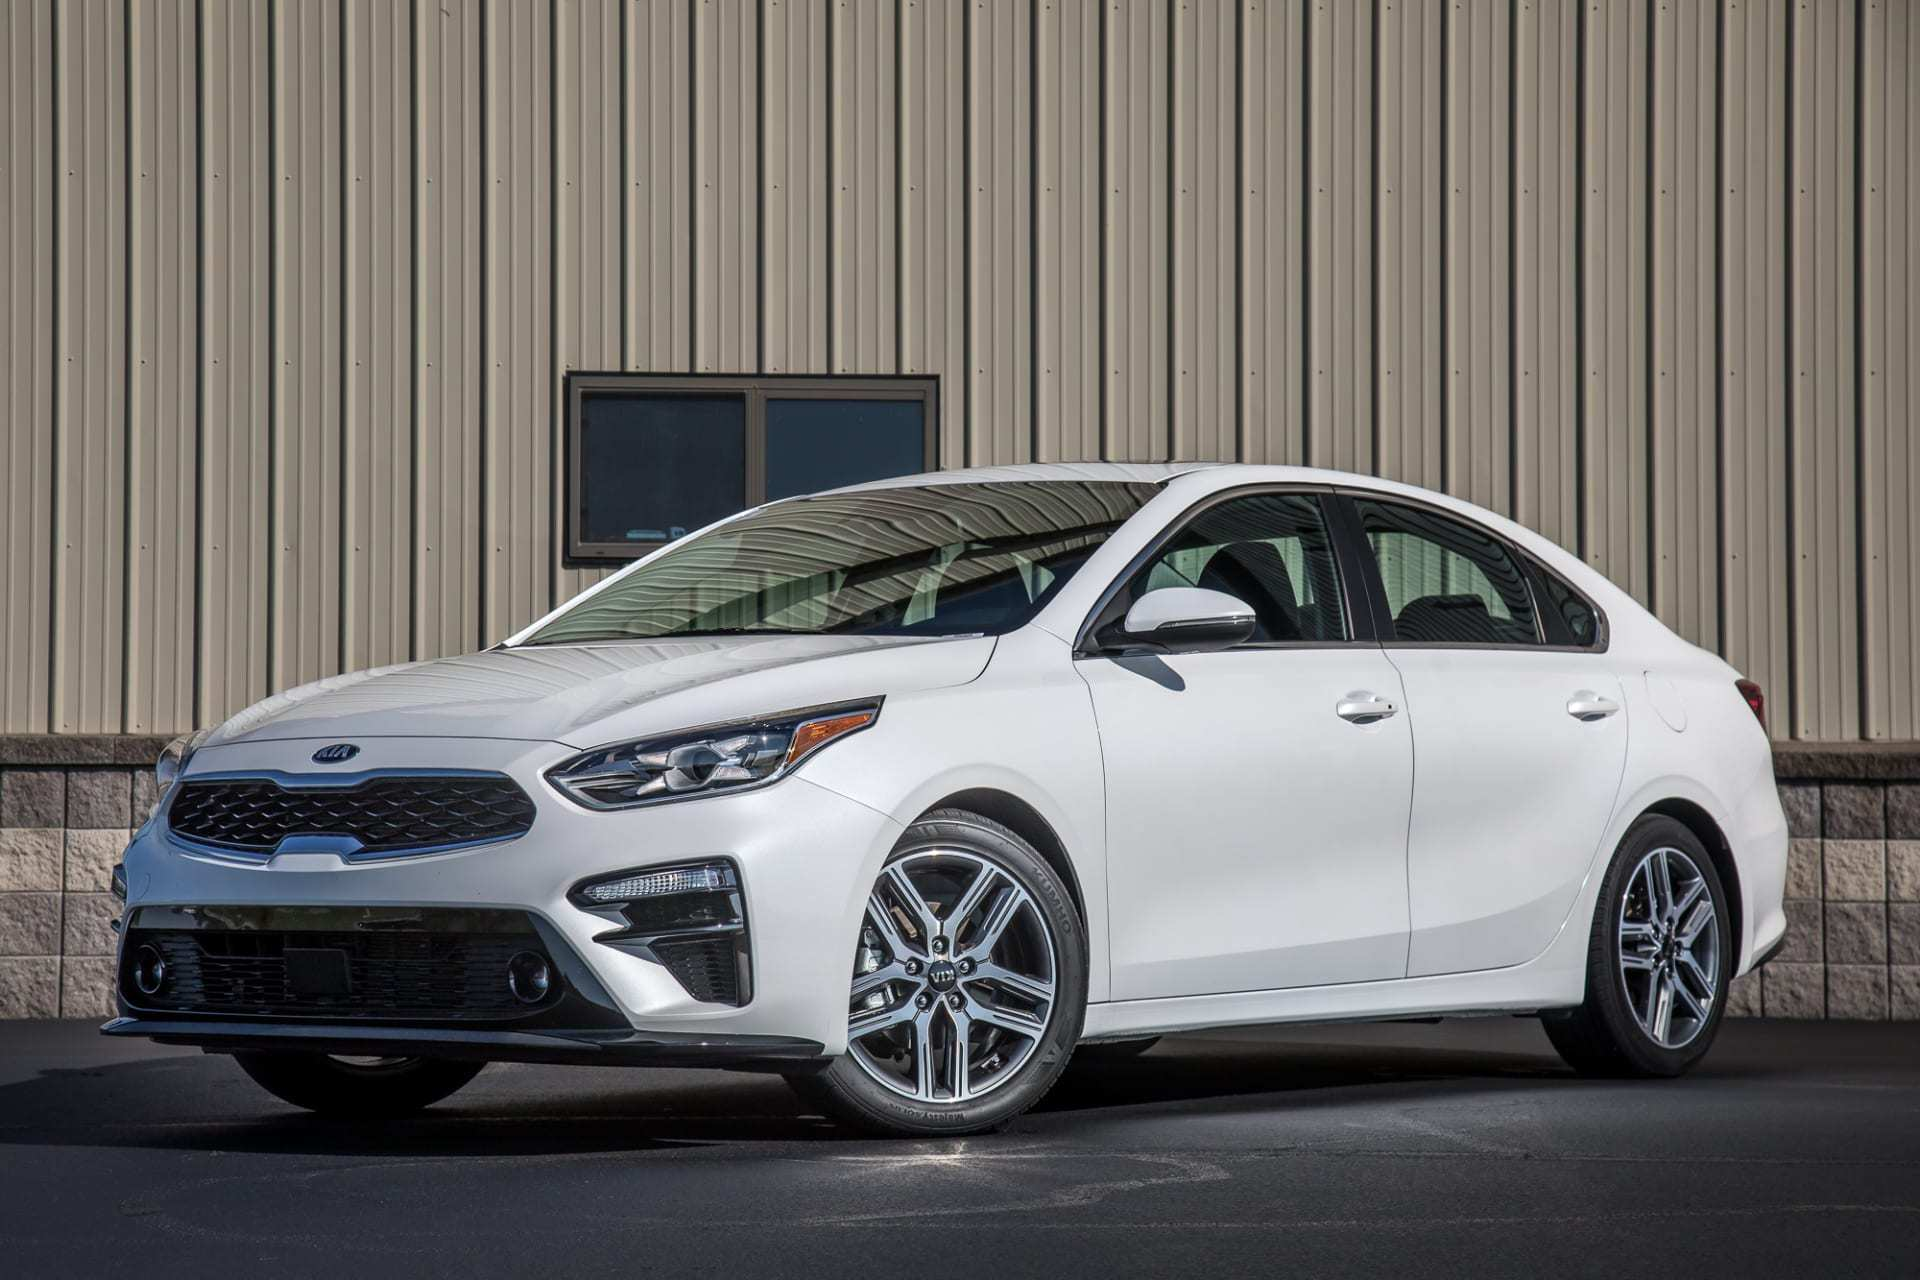 84 A 2019 Kia Forte5 Hatchback Redesign And Review